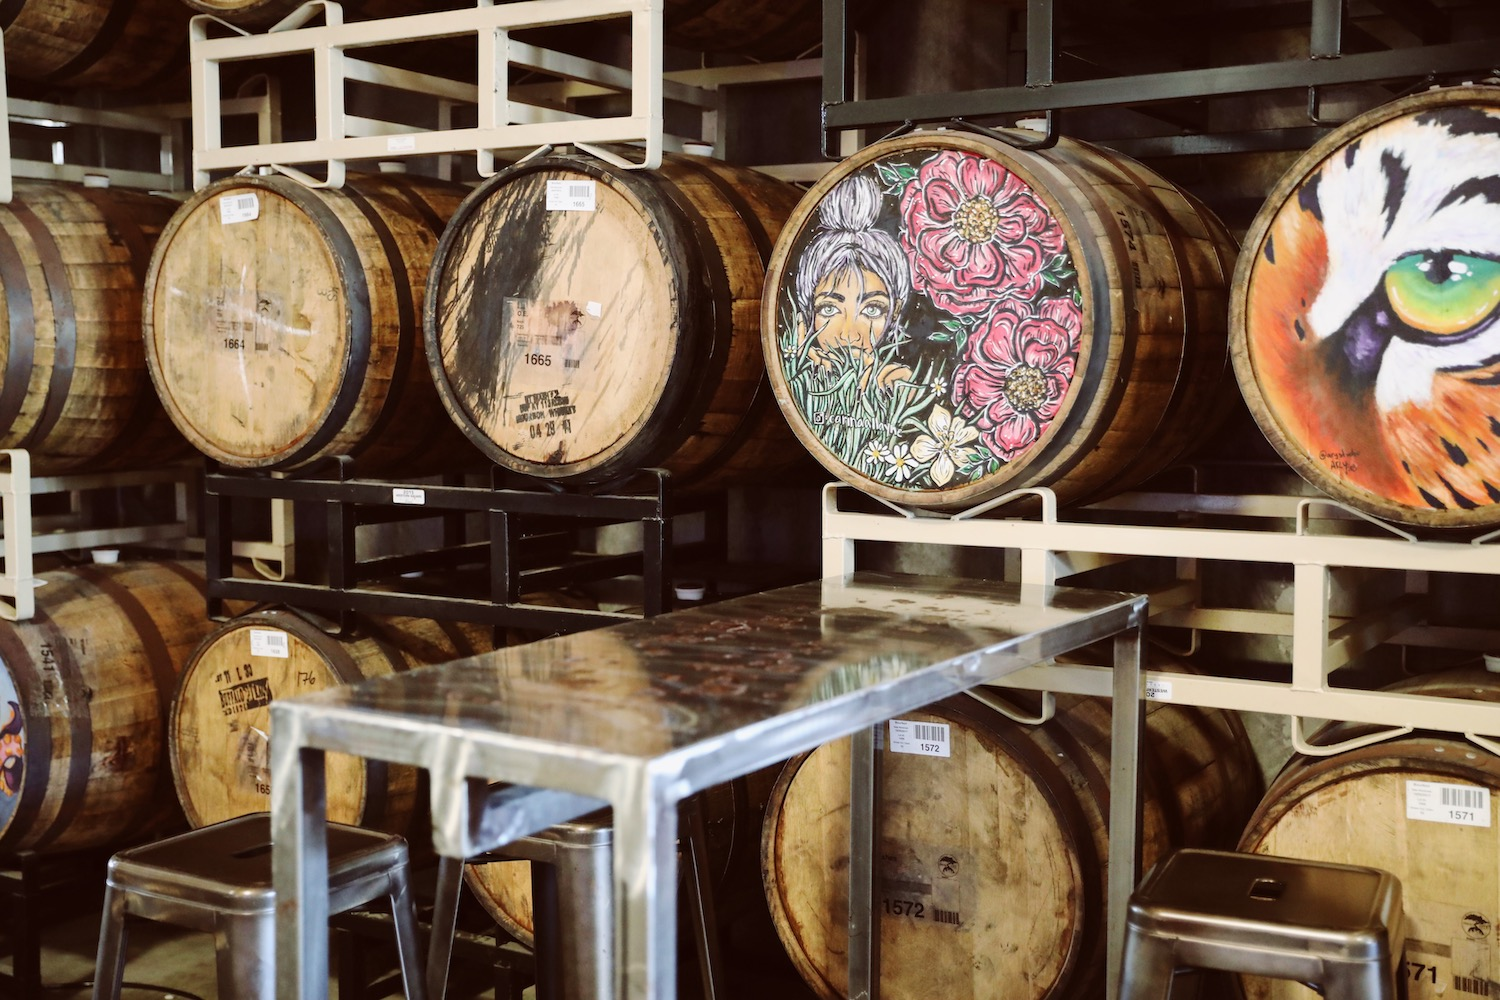 Colorful artistic barrels at Smog City Brewery & Taproom